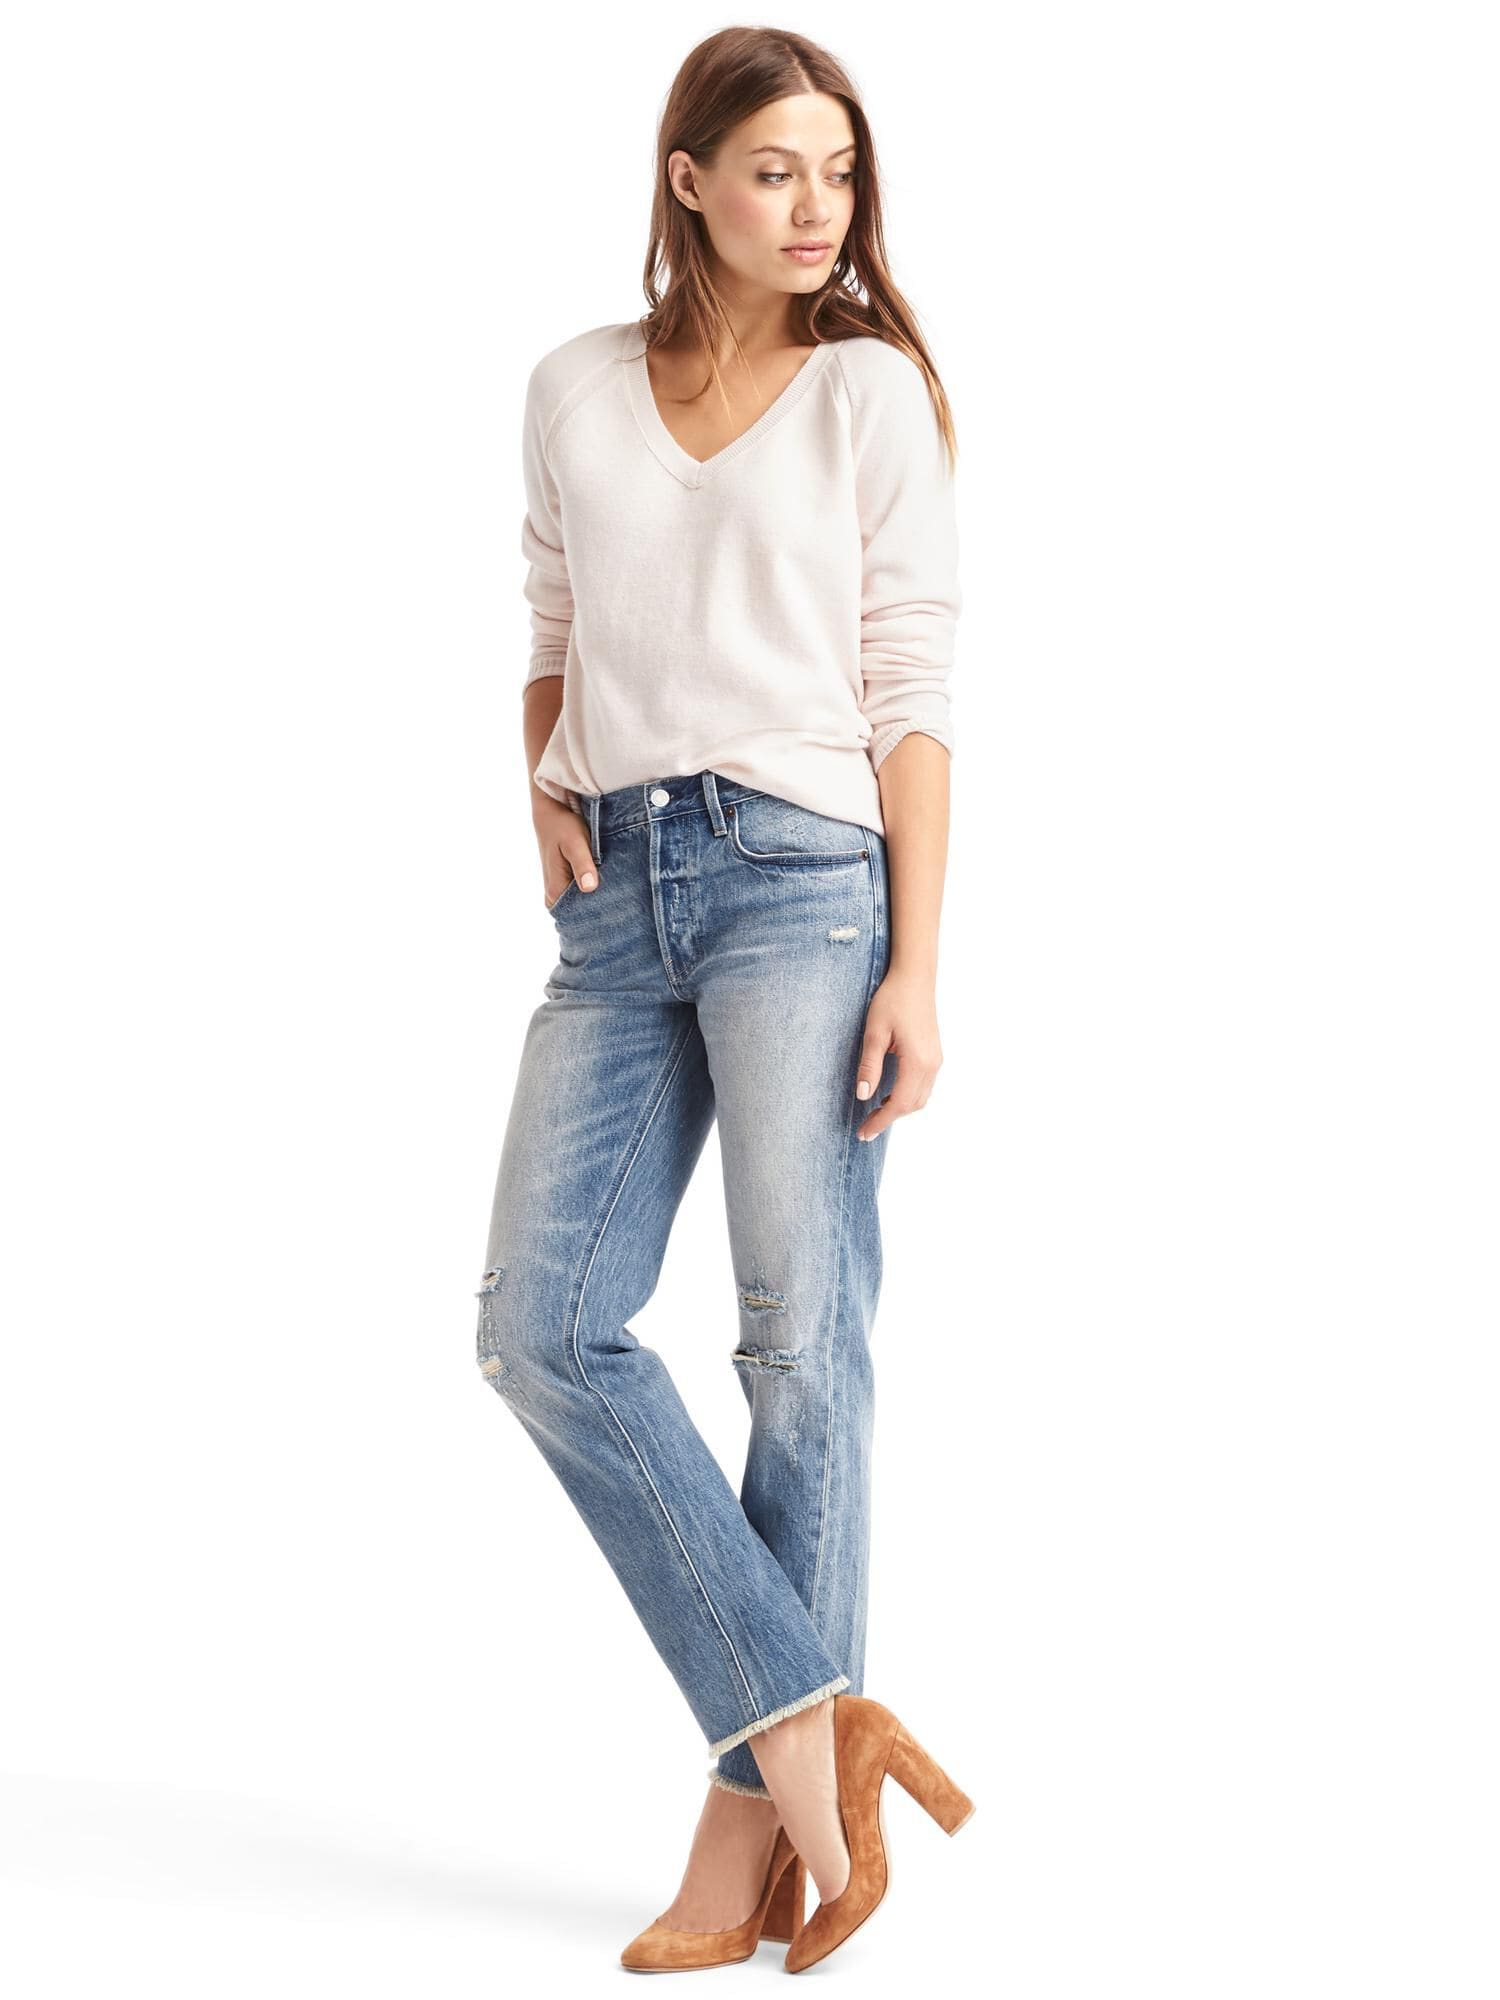 Mid Rise Destructed Vintage Straight Jeans Gap Uk Shoes 12 Girl Product Image Is Missing